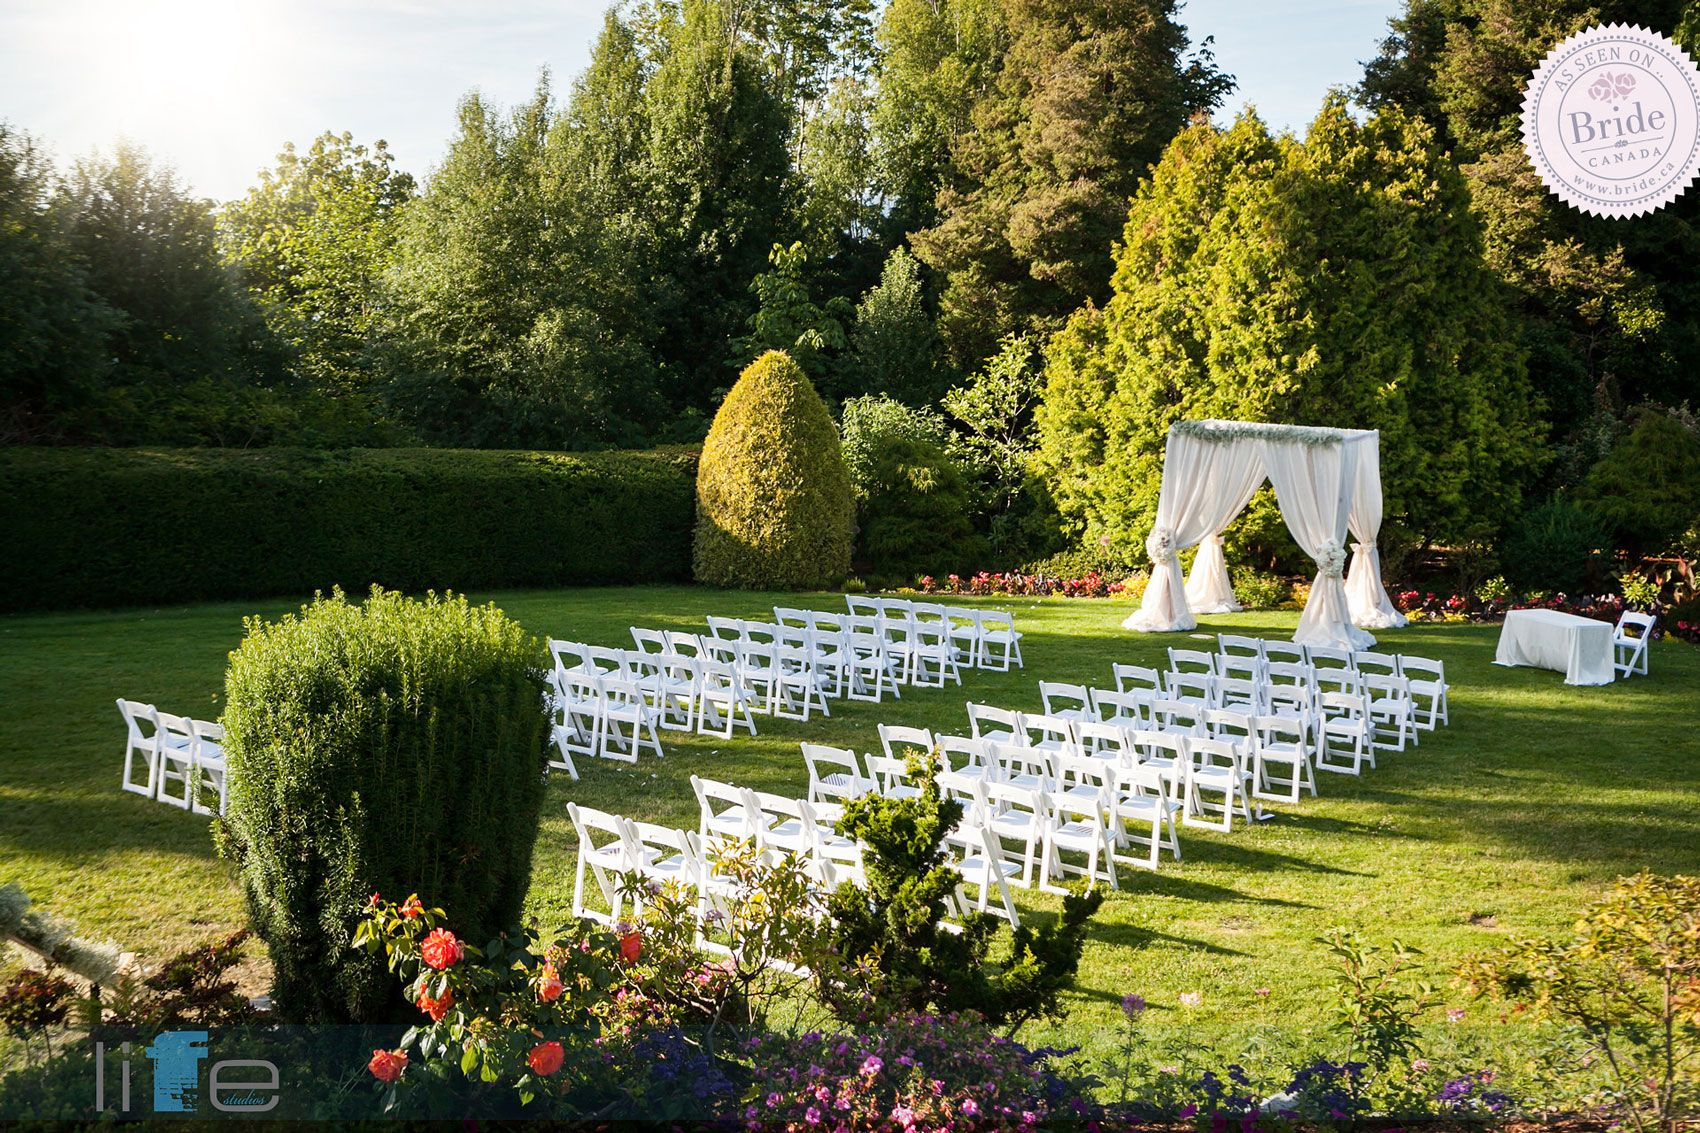 Outdoor Wedding Ceremony: The Beautiful Grounds Of Cecil Green Park House Offer One